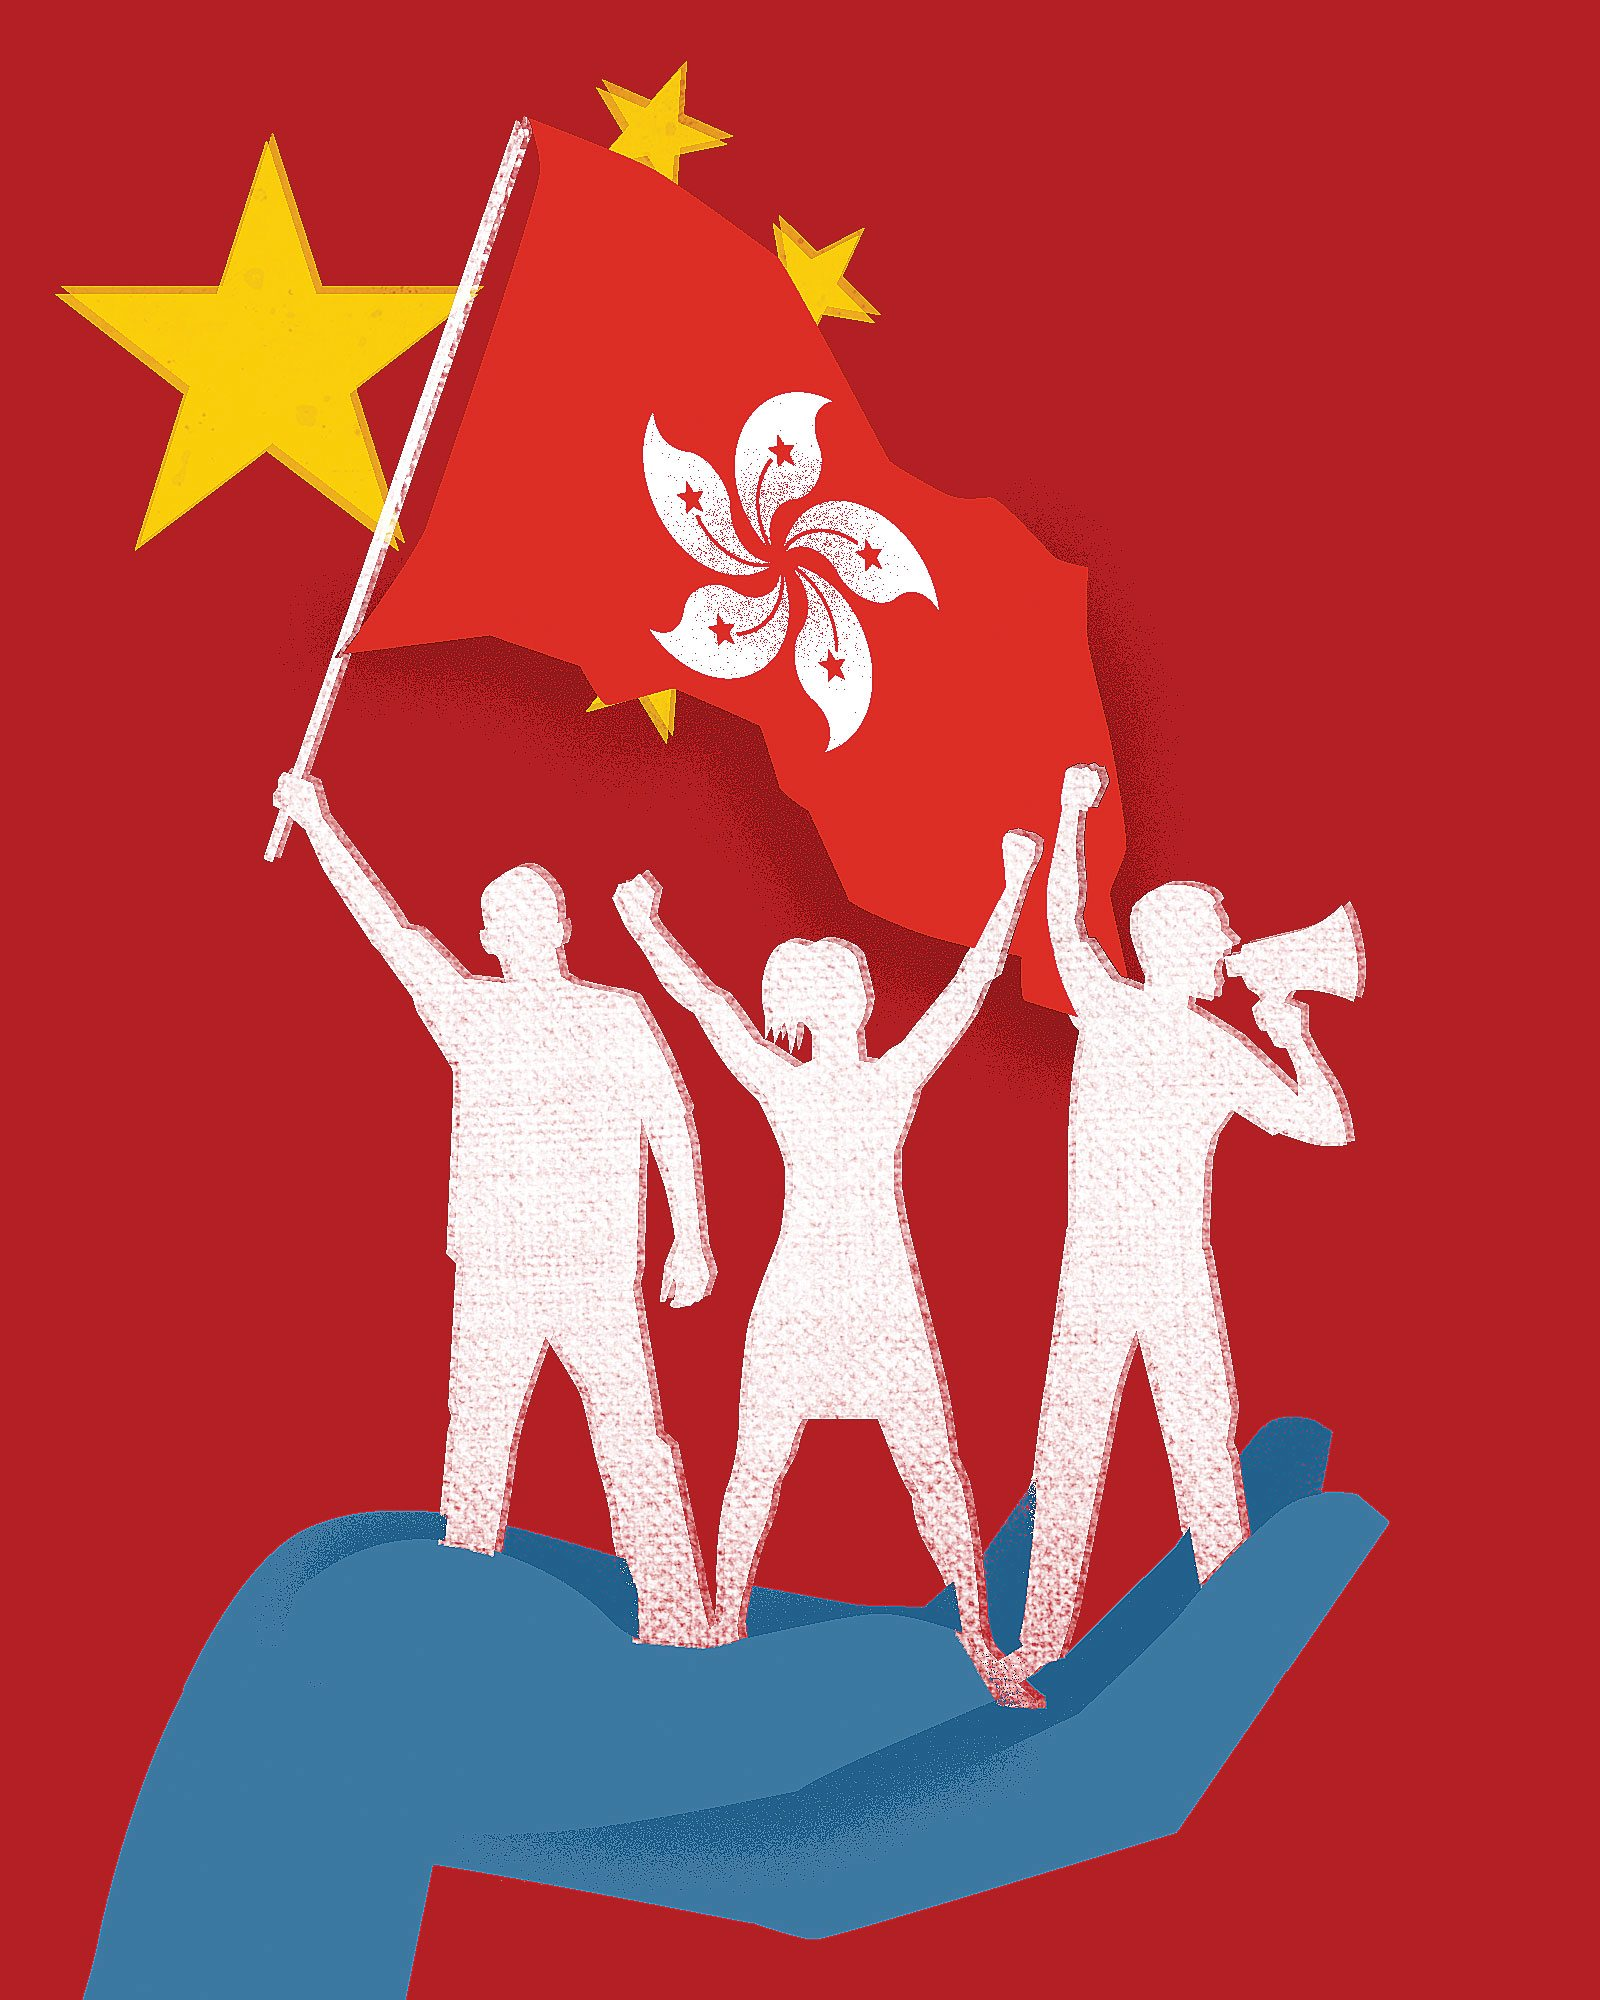 Hong Kong freedom fighters deserve more support than they're getting